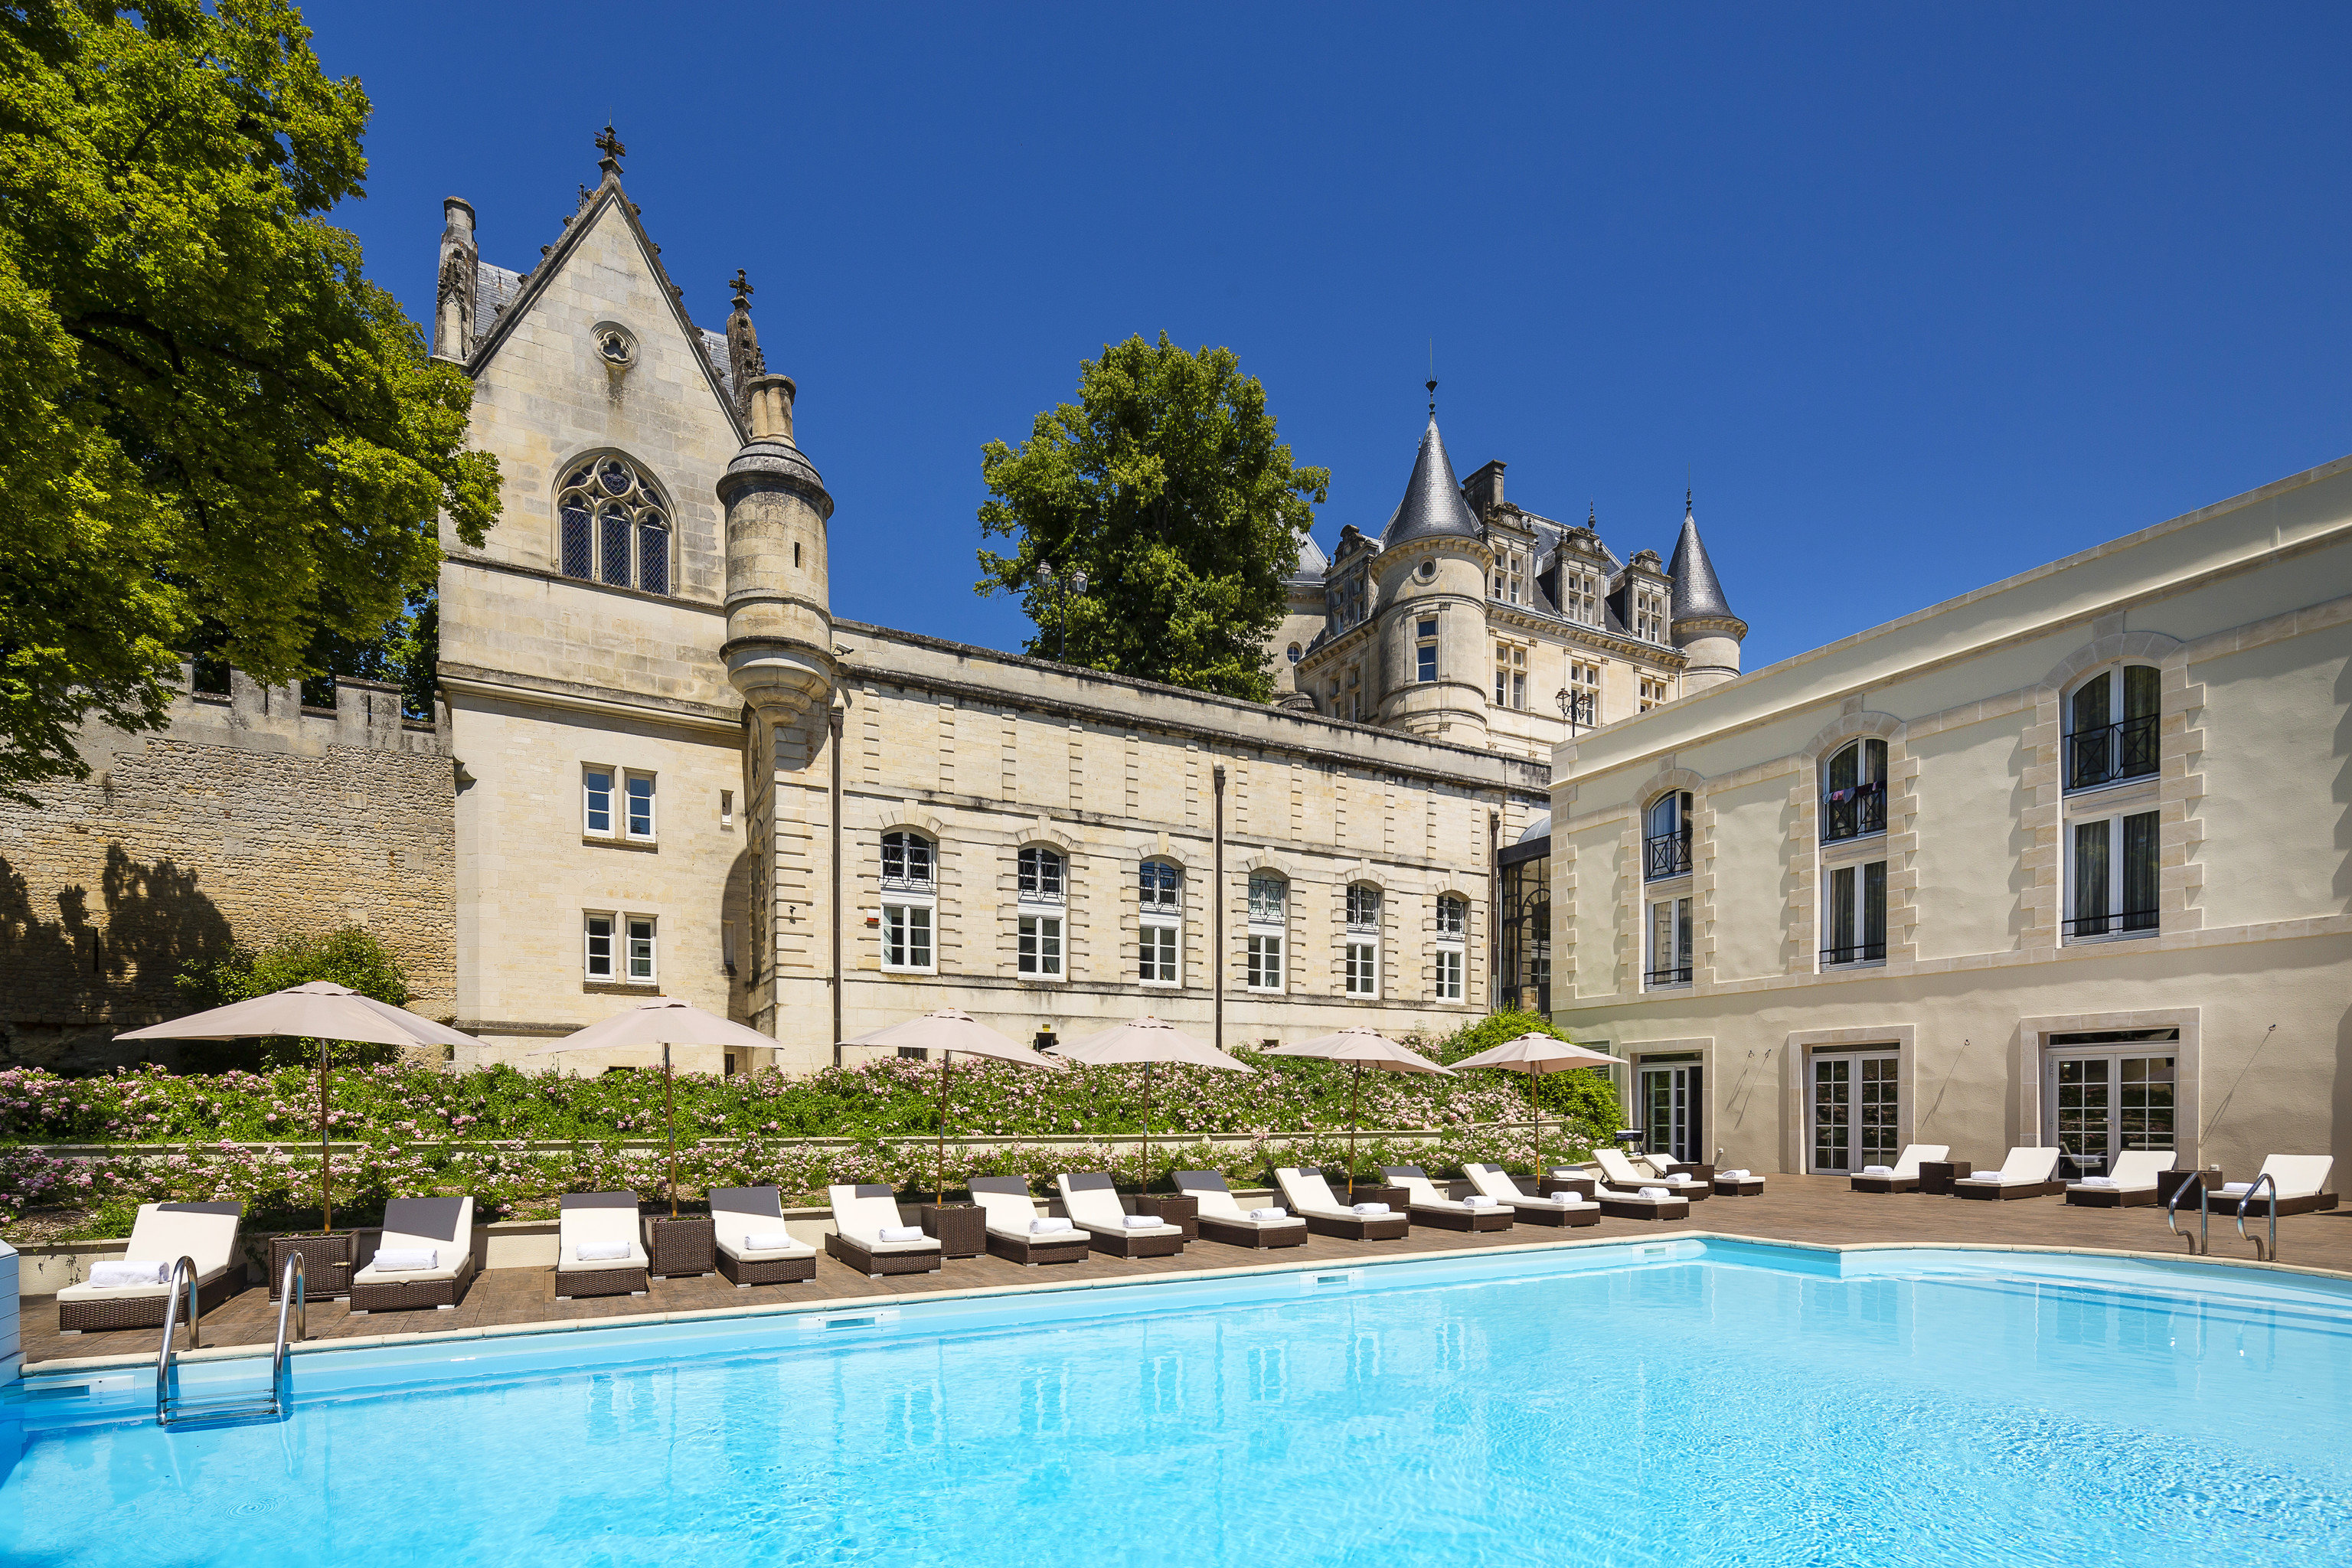 Hotels Trip Ideas outdoor tree building property estate château Pool palace mansion Villa swimming pool stately home swimming Resort